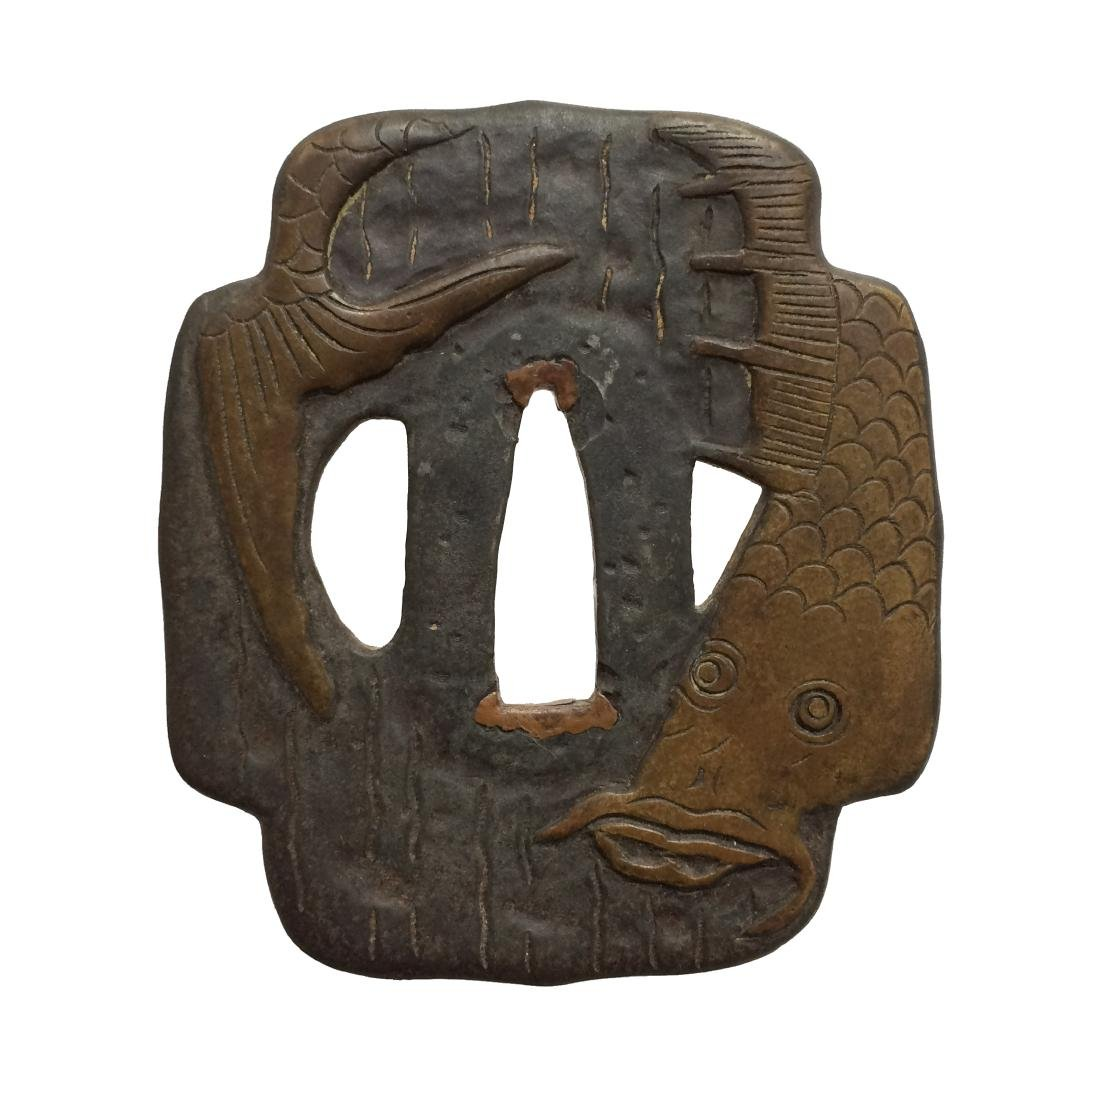 Iron tsuba carved and inlaid with brass